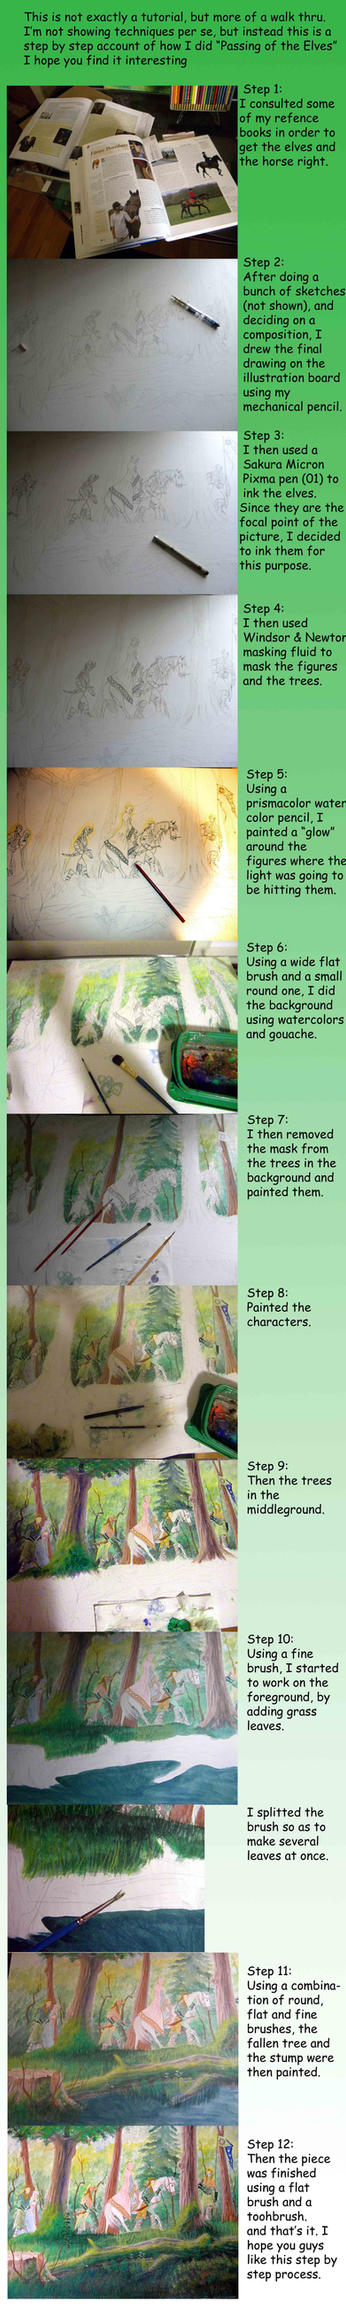 Painting step by step by hcollazo2000